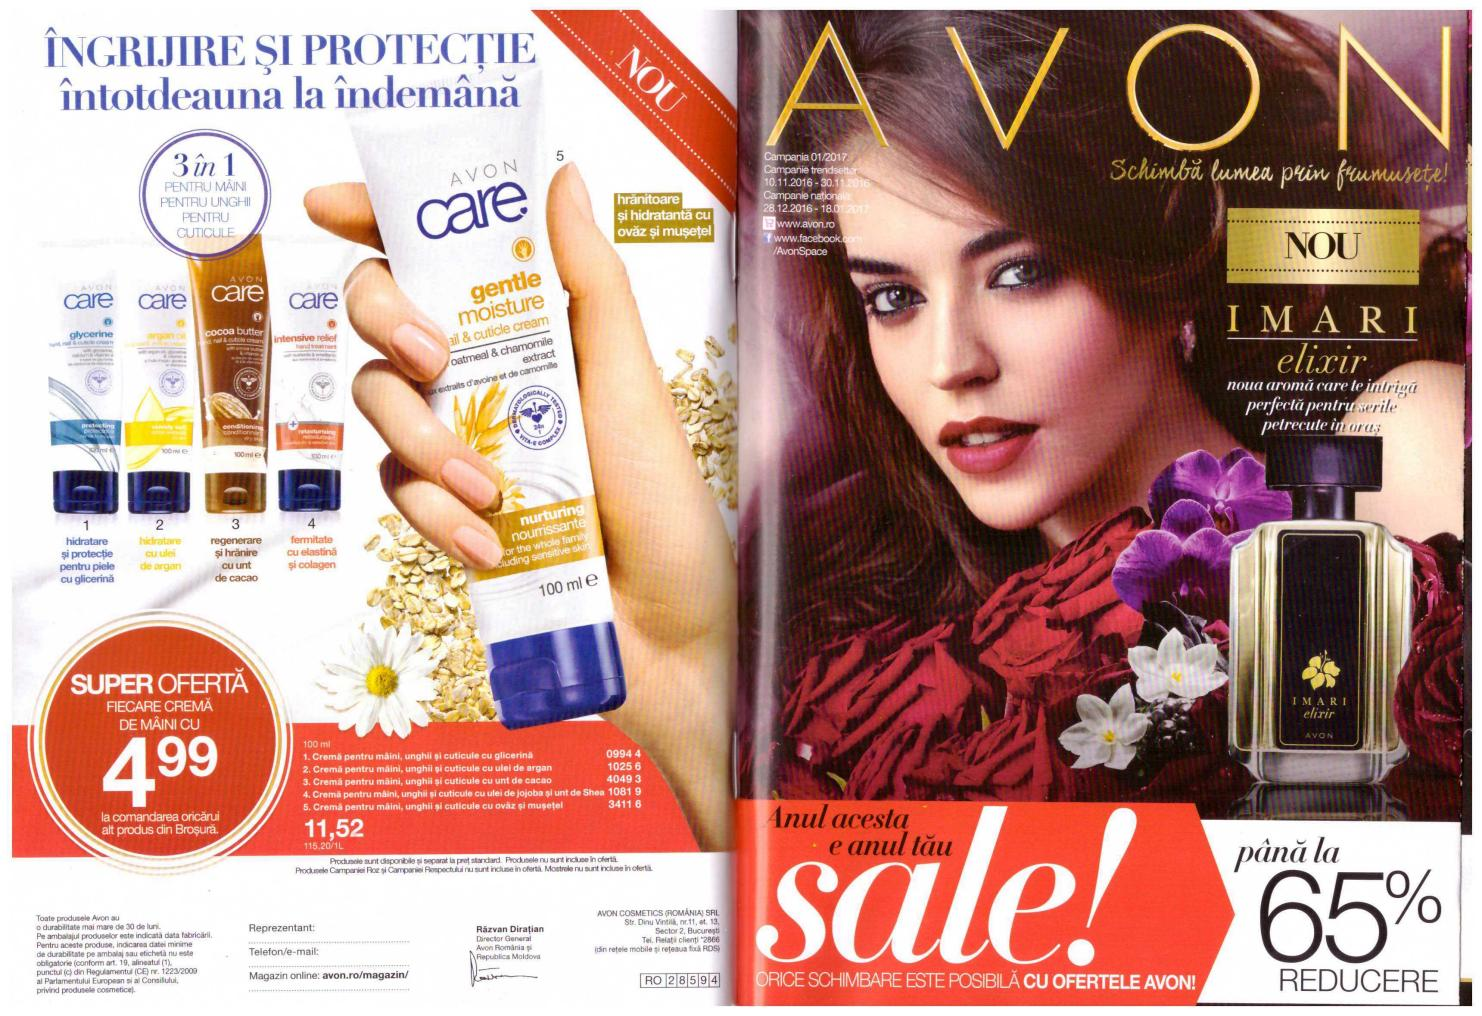 Avon Catalog Online Brochure Avon Campaign 22 10/02 - 10/15/! If you are reading this blog post, you're probably one of those stranded customers that hasn't seen an Avon catalog for awhile.